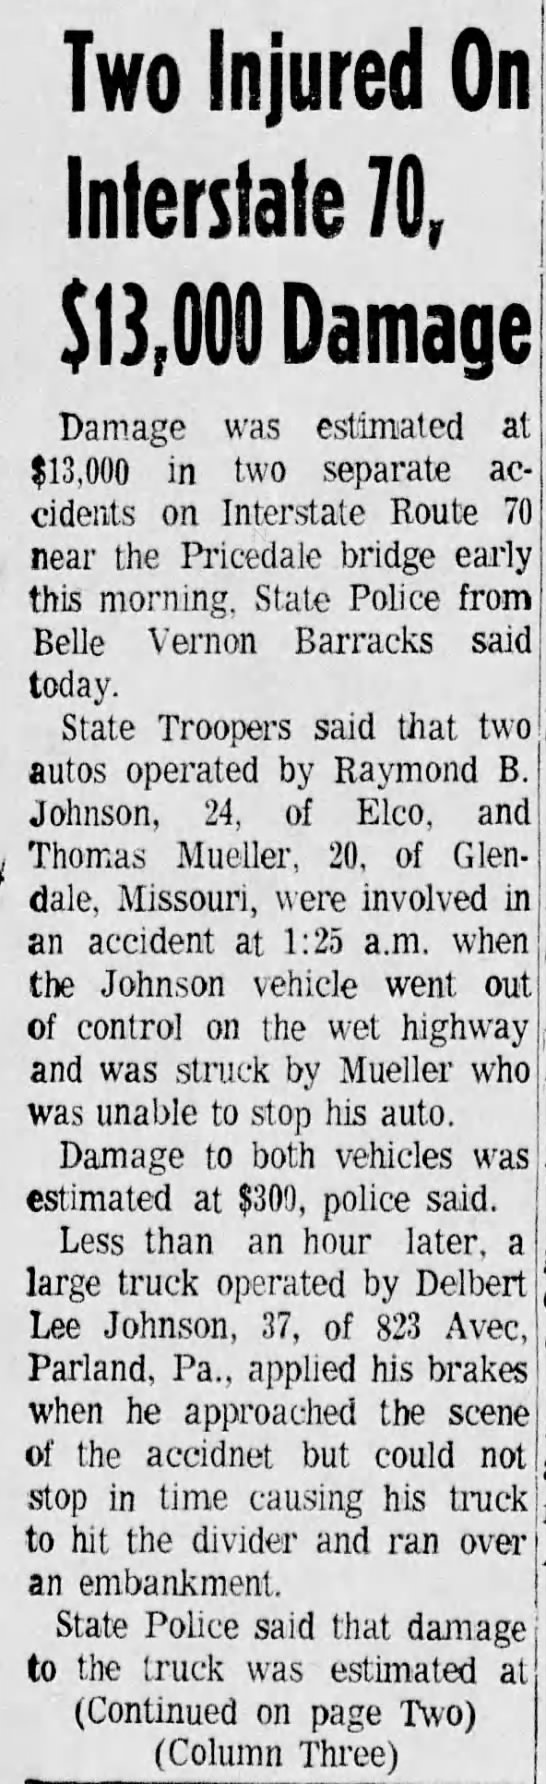 William D Goodwin Passenger Accident The Daily Republican Monongahela Pa Jun 13 1969 1 of 2 - Two Injured On Interstate 70, $13,009 Damage...